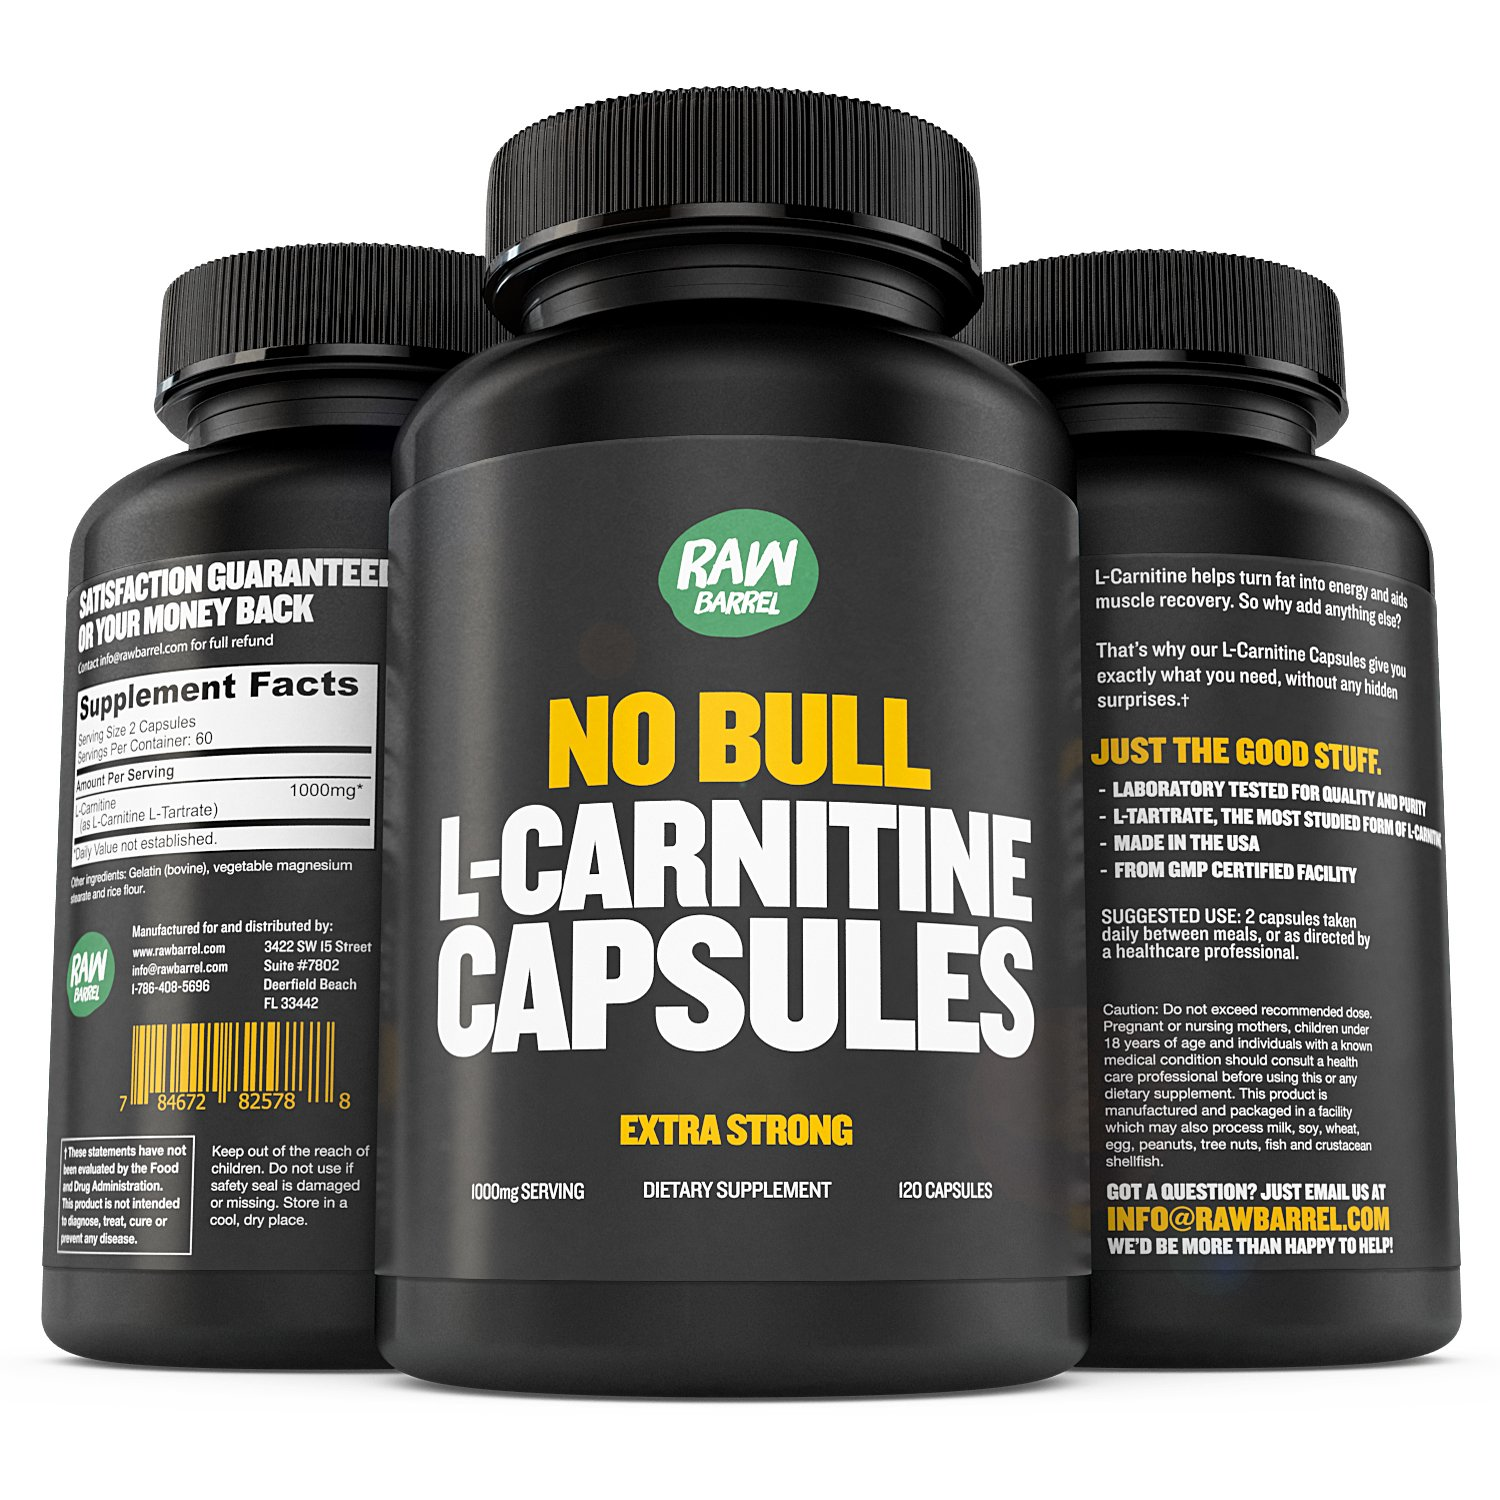 Raw Barrel's - Pure L-Carnitine Capsules - 500mg EXTRA STRONG Caps - SEE RESULTS OR YOUR MONEY BACK - L Carnitine L Tartrate - 120 Pills, 60 x 1000mg servings *FREE* digital guide